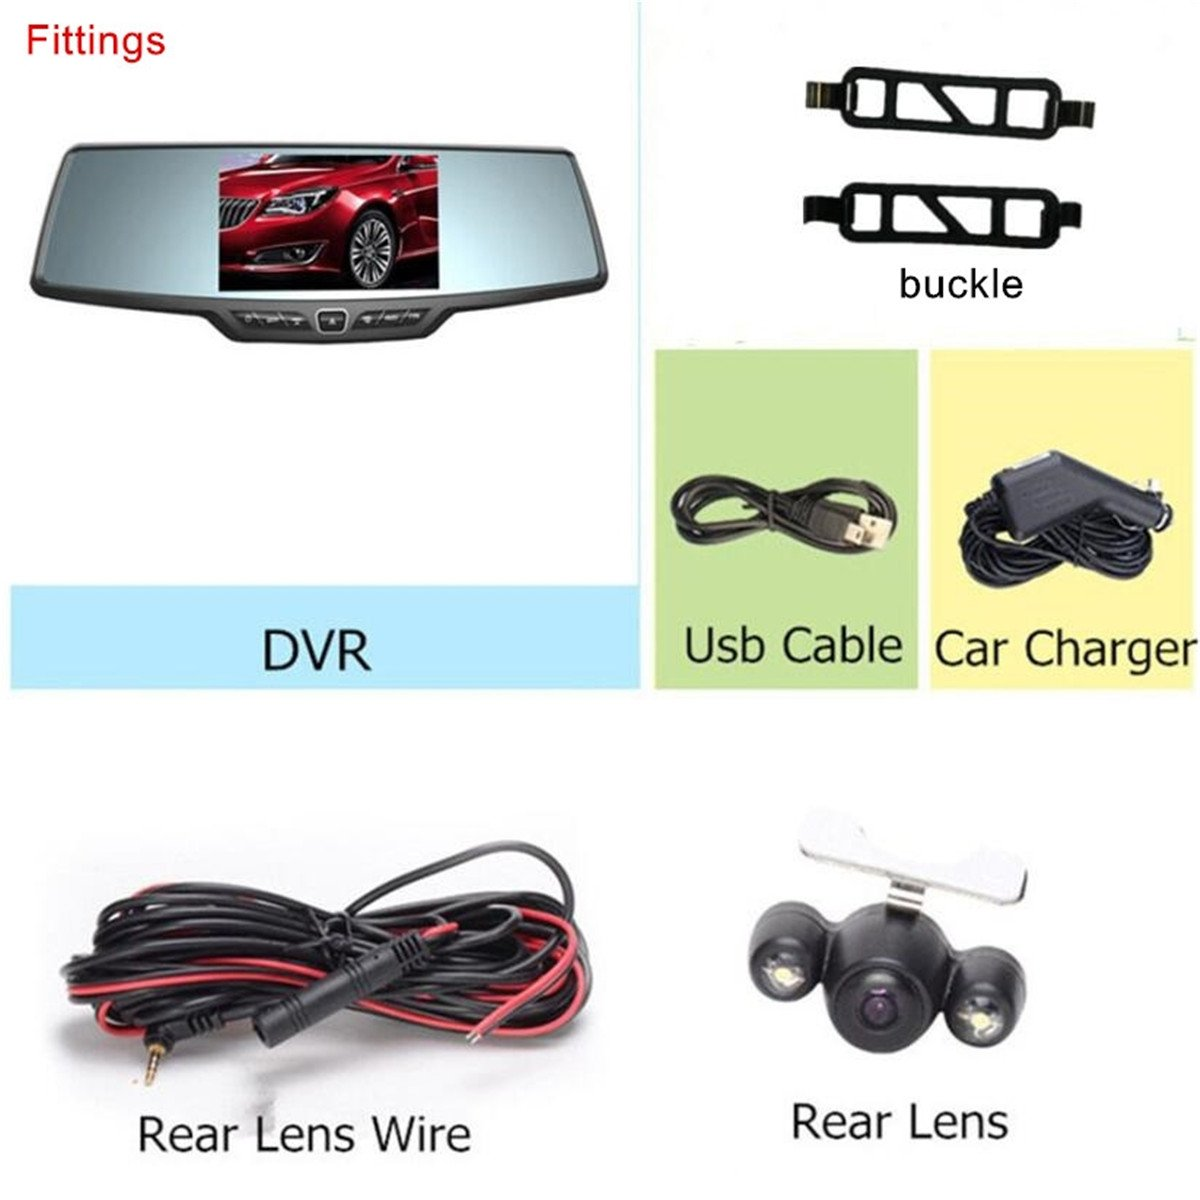 Dash Cam,4.3'' Full HD 1080P Rearview Mirror Dual Lens Video Recorder Car DVR 170 Degree Wide Angle, Loop Recording,G-Sensor,Parking Monitor,Reverse Image by Range Tour (Image #8)